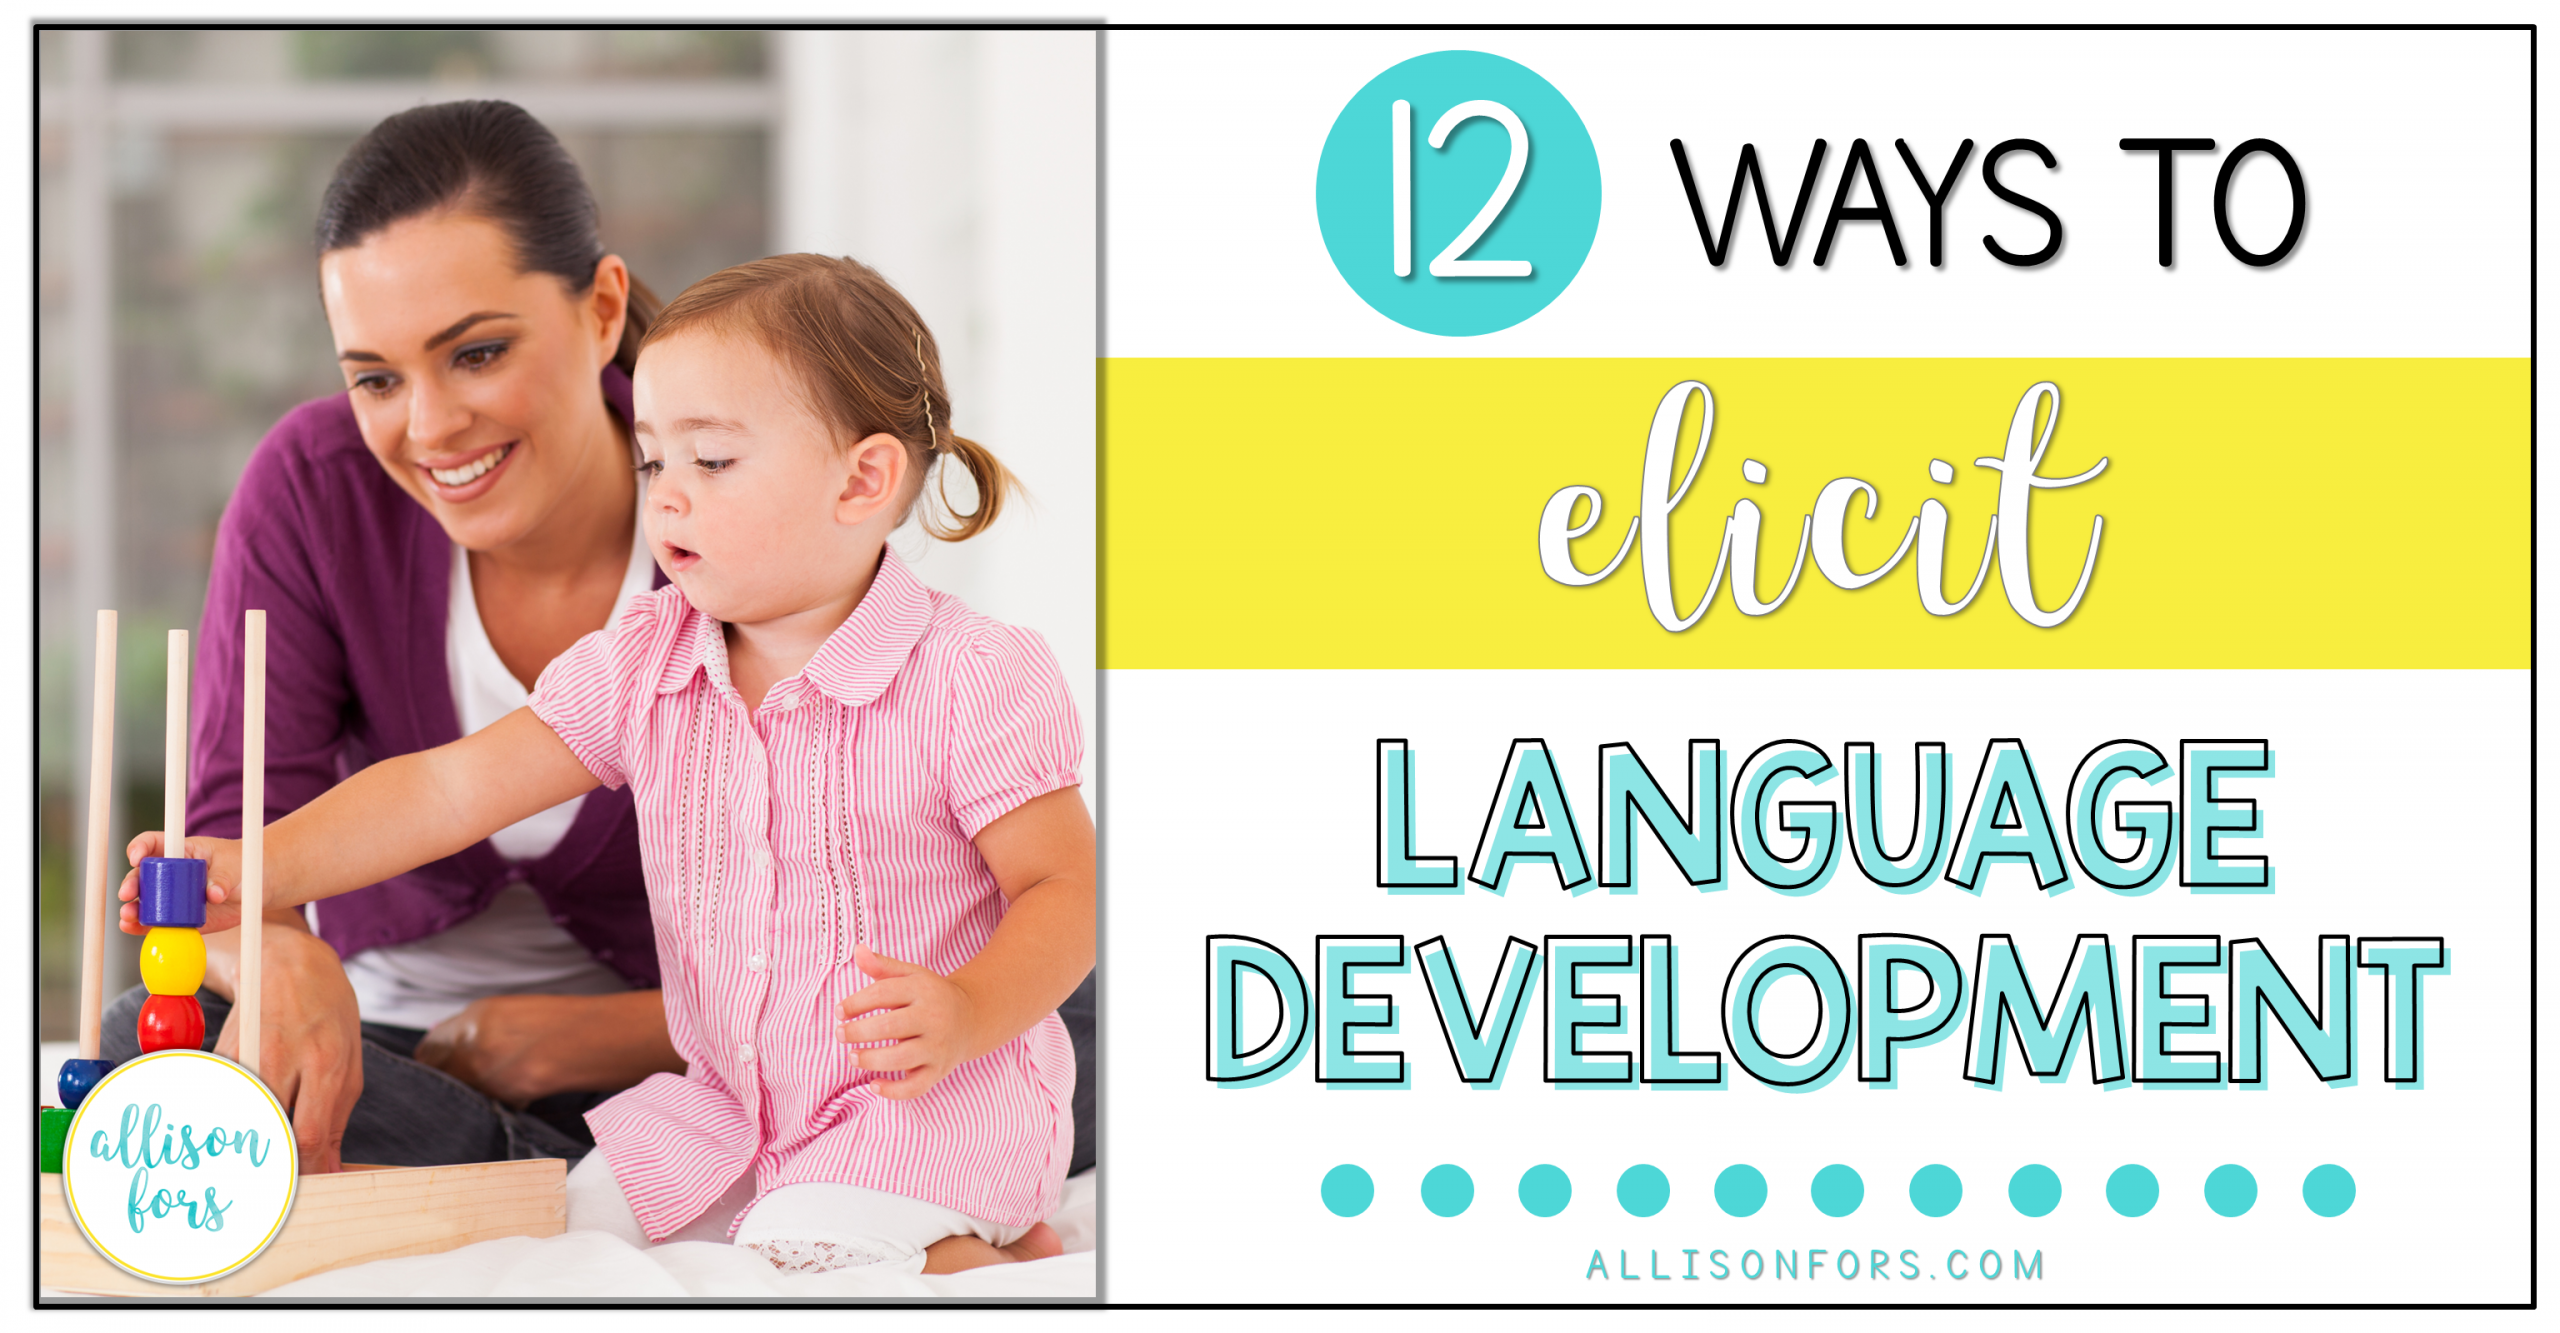 12 Ways to Elicit Language Development